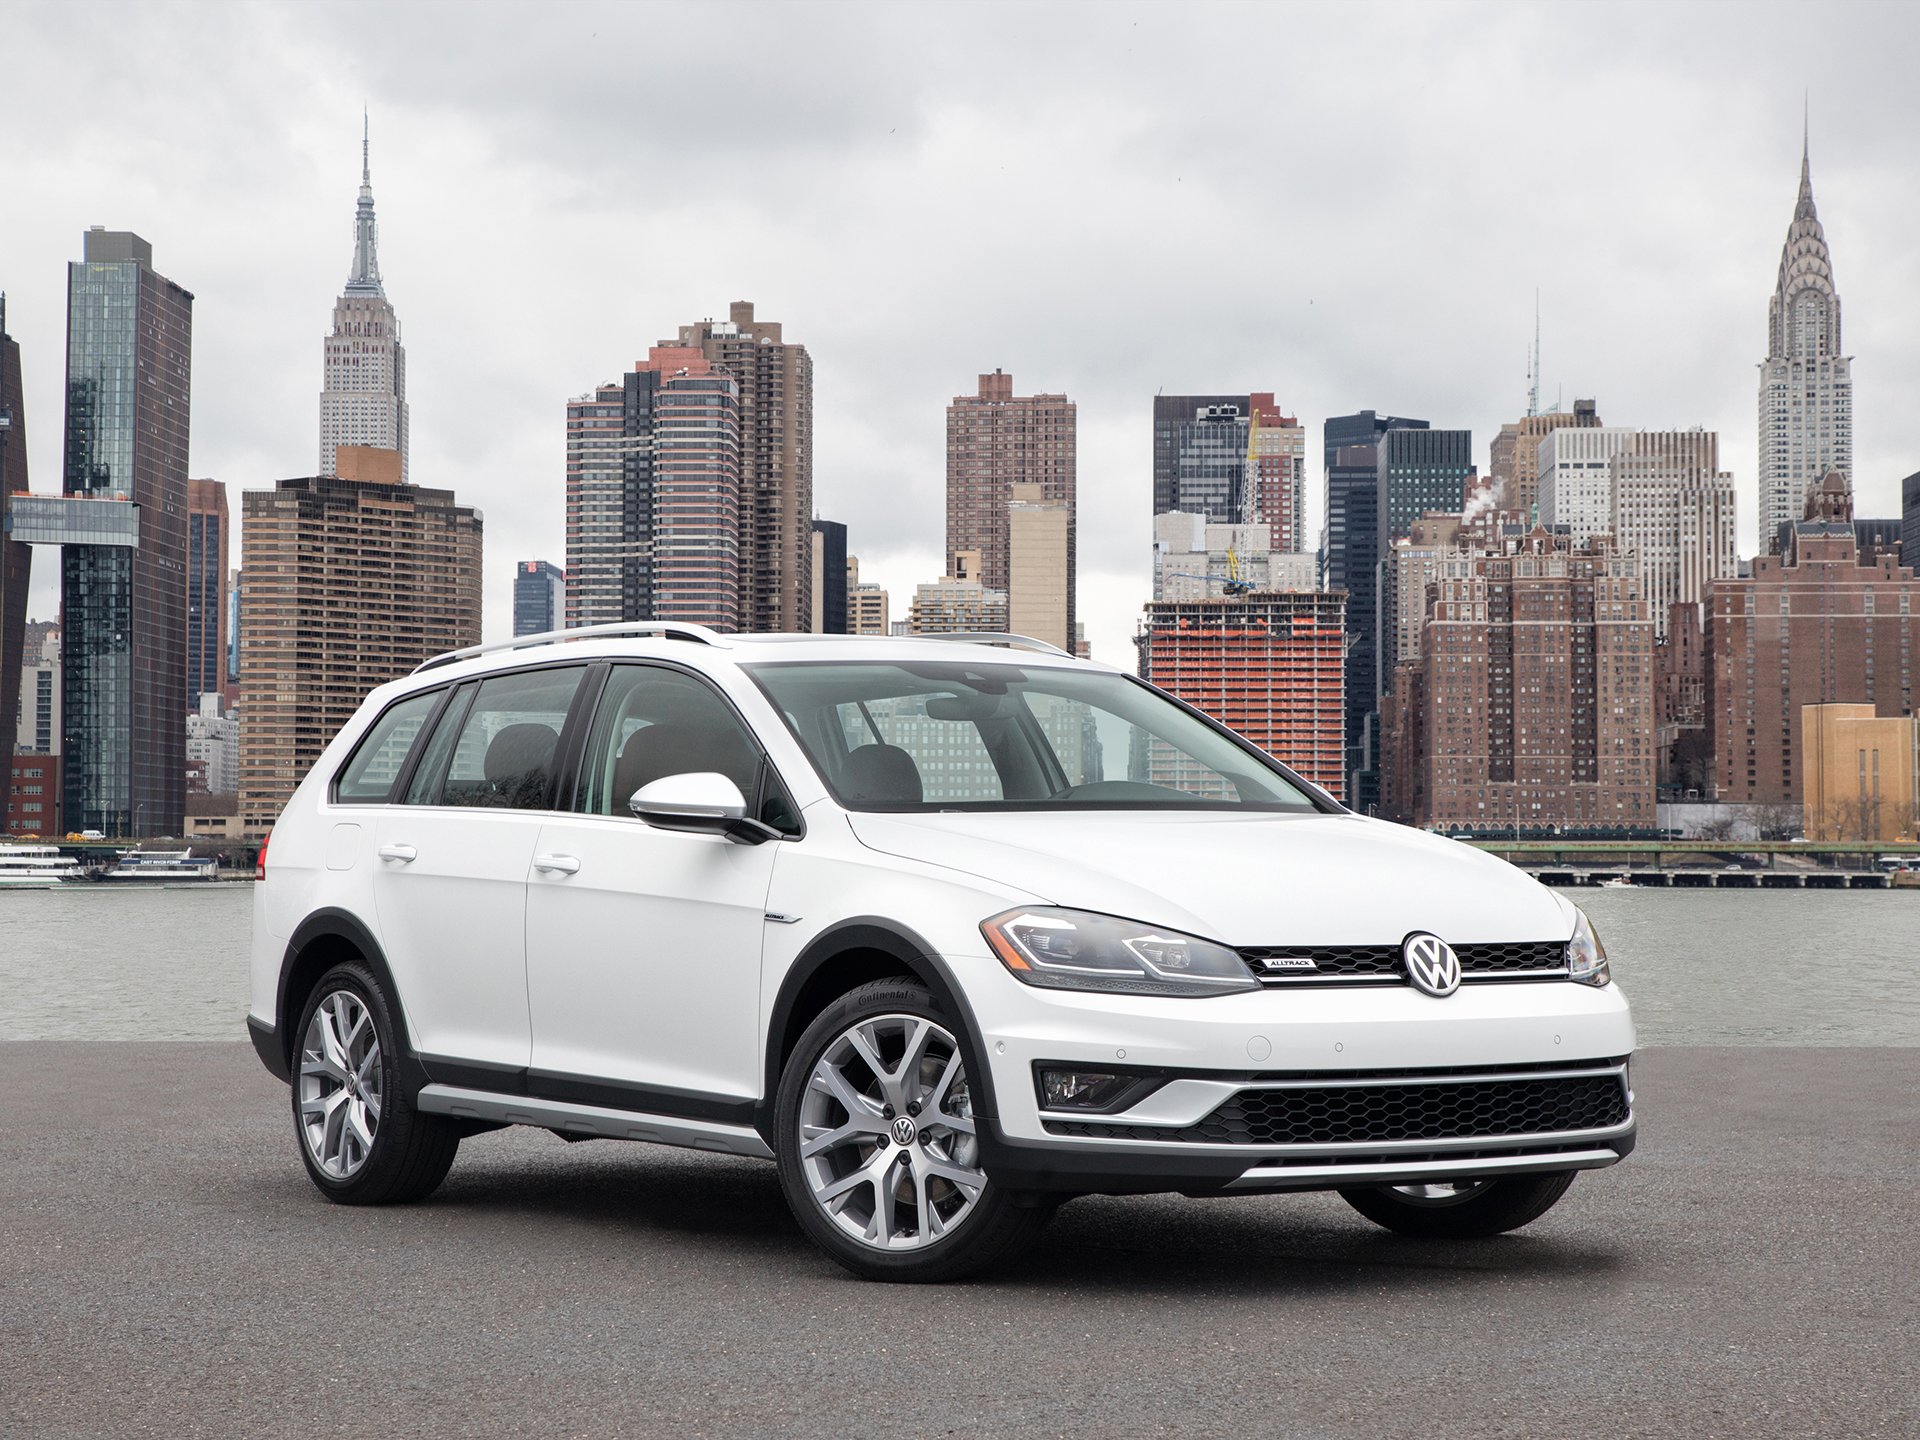 6f8a4785c Volkswagen Updates All The Golfs For 2018 - The Drive